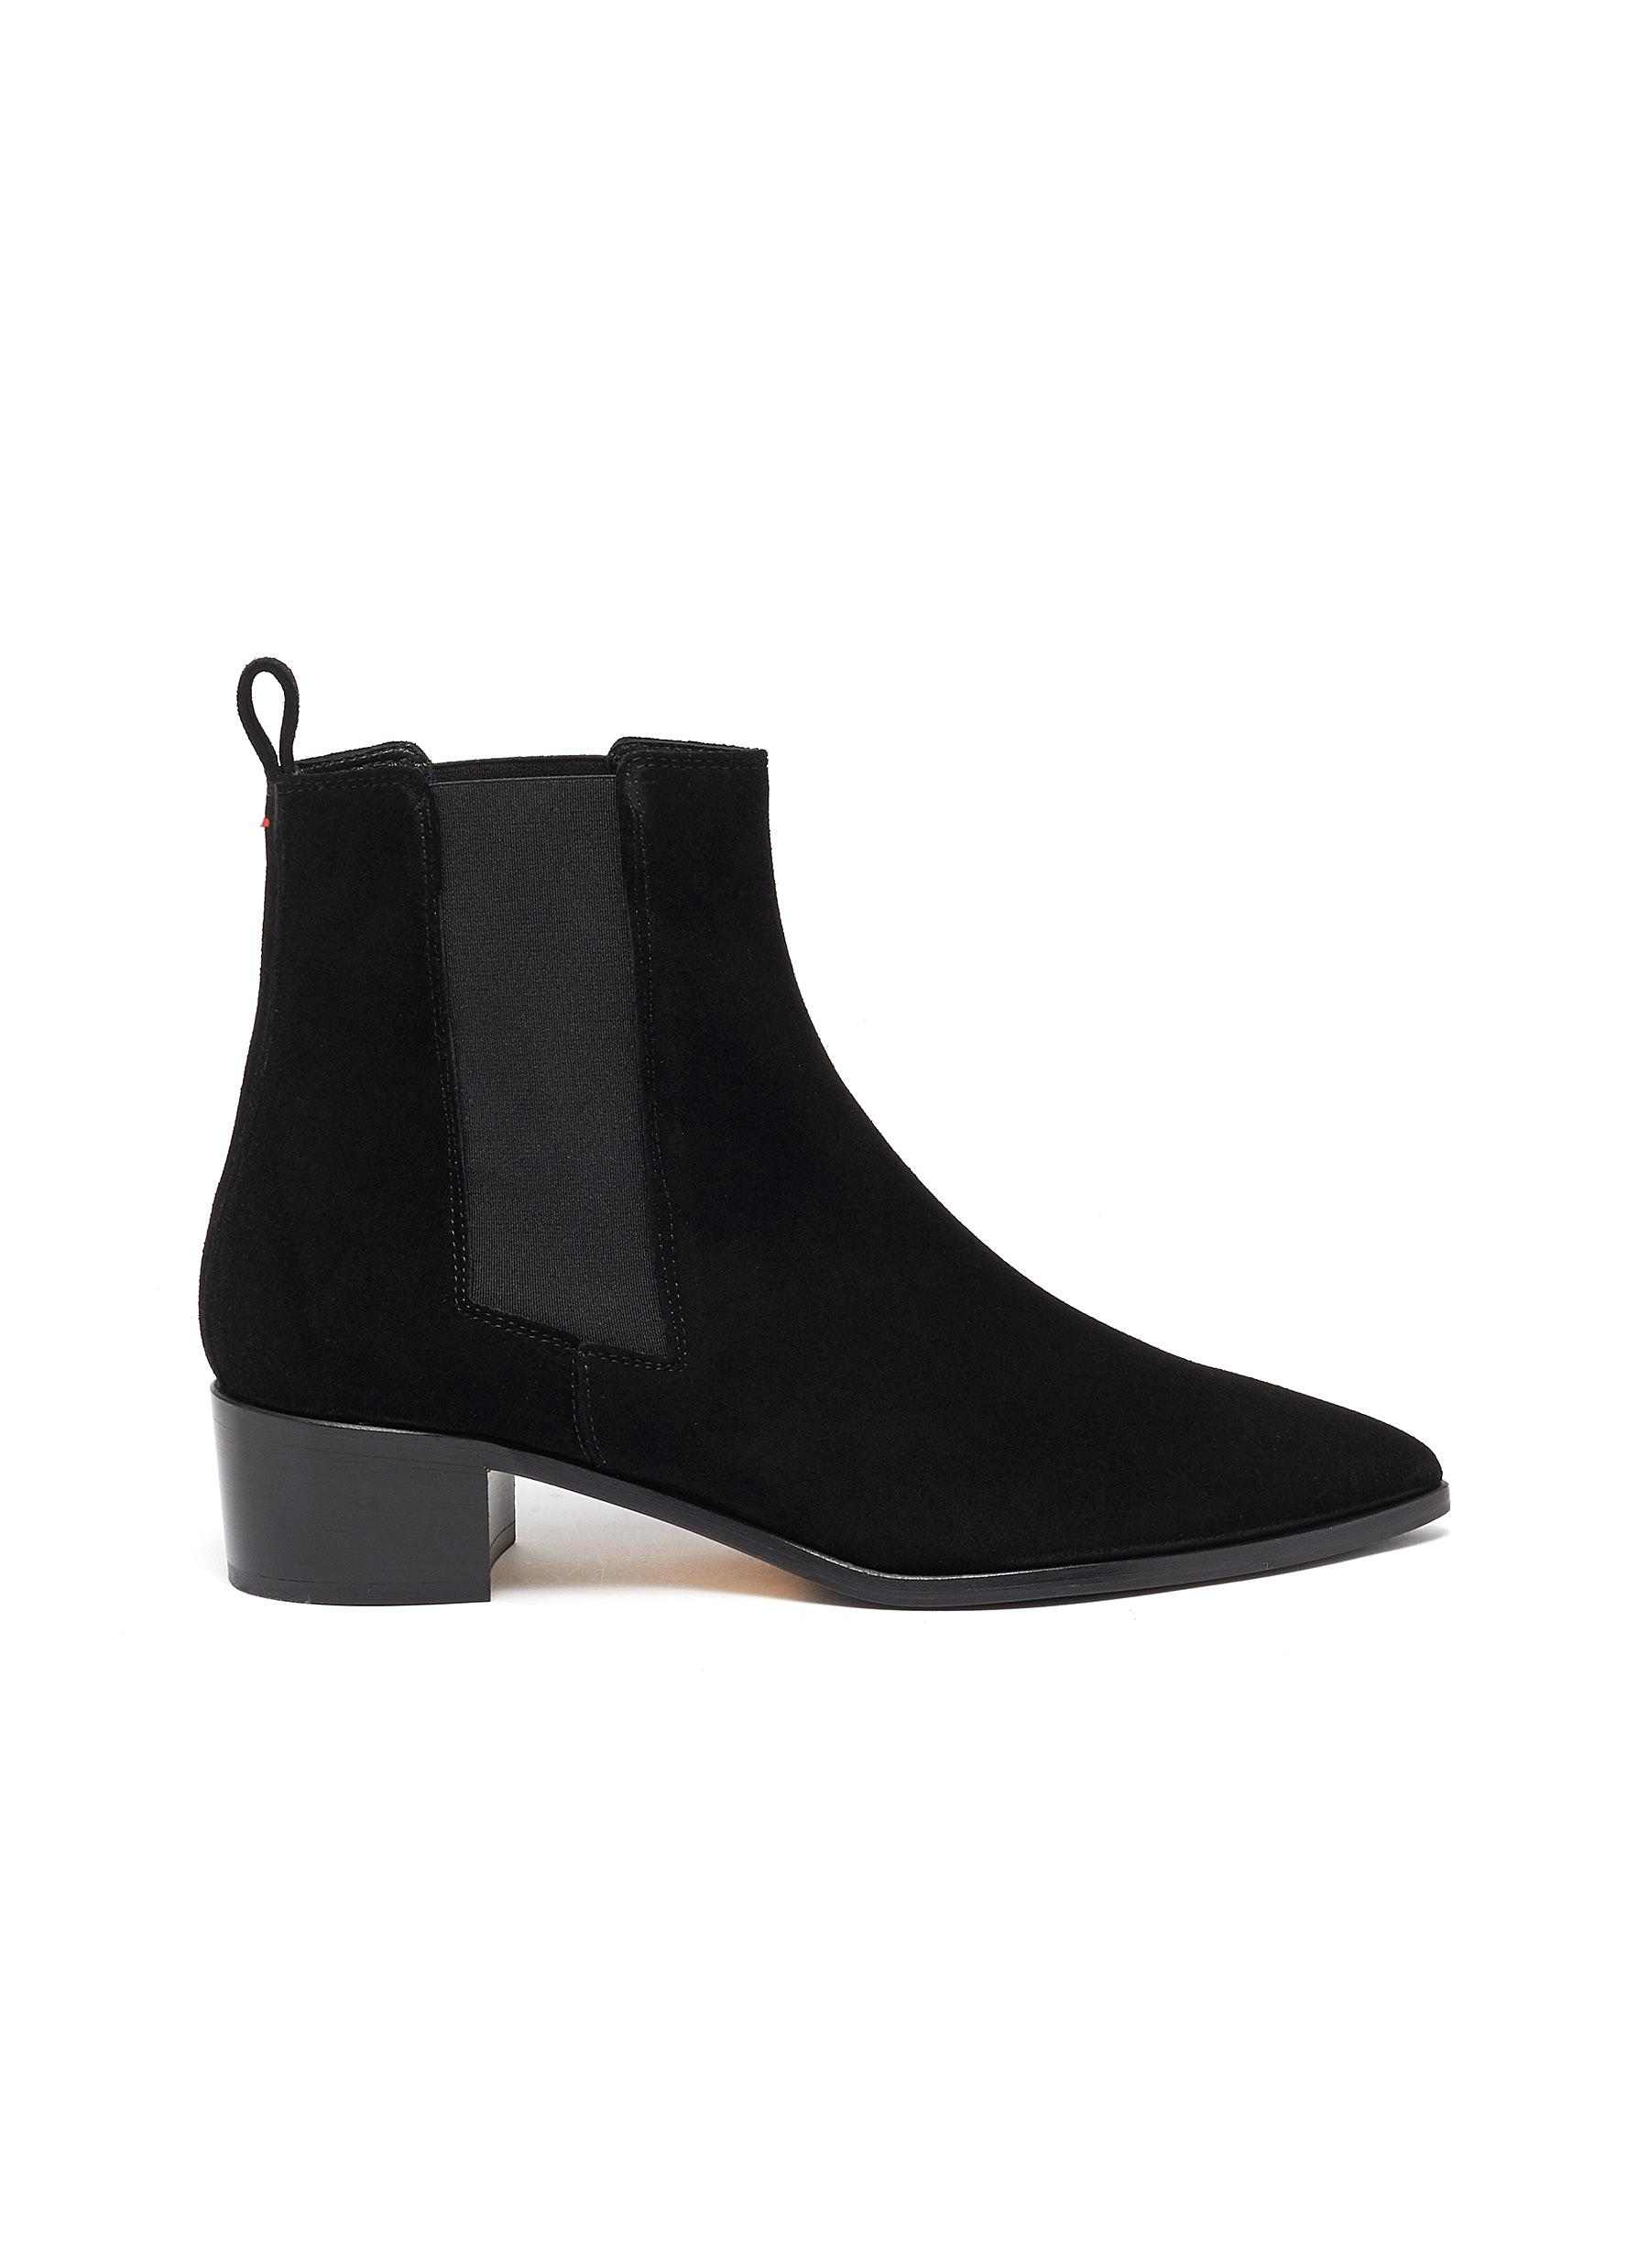 Lou suede Chelsea boots by Aeyde